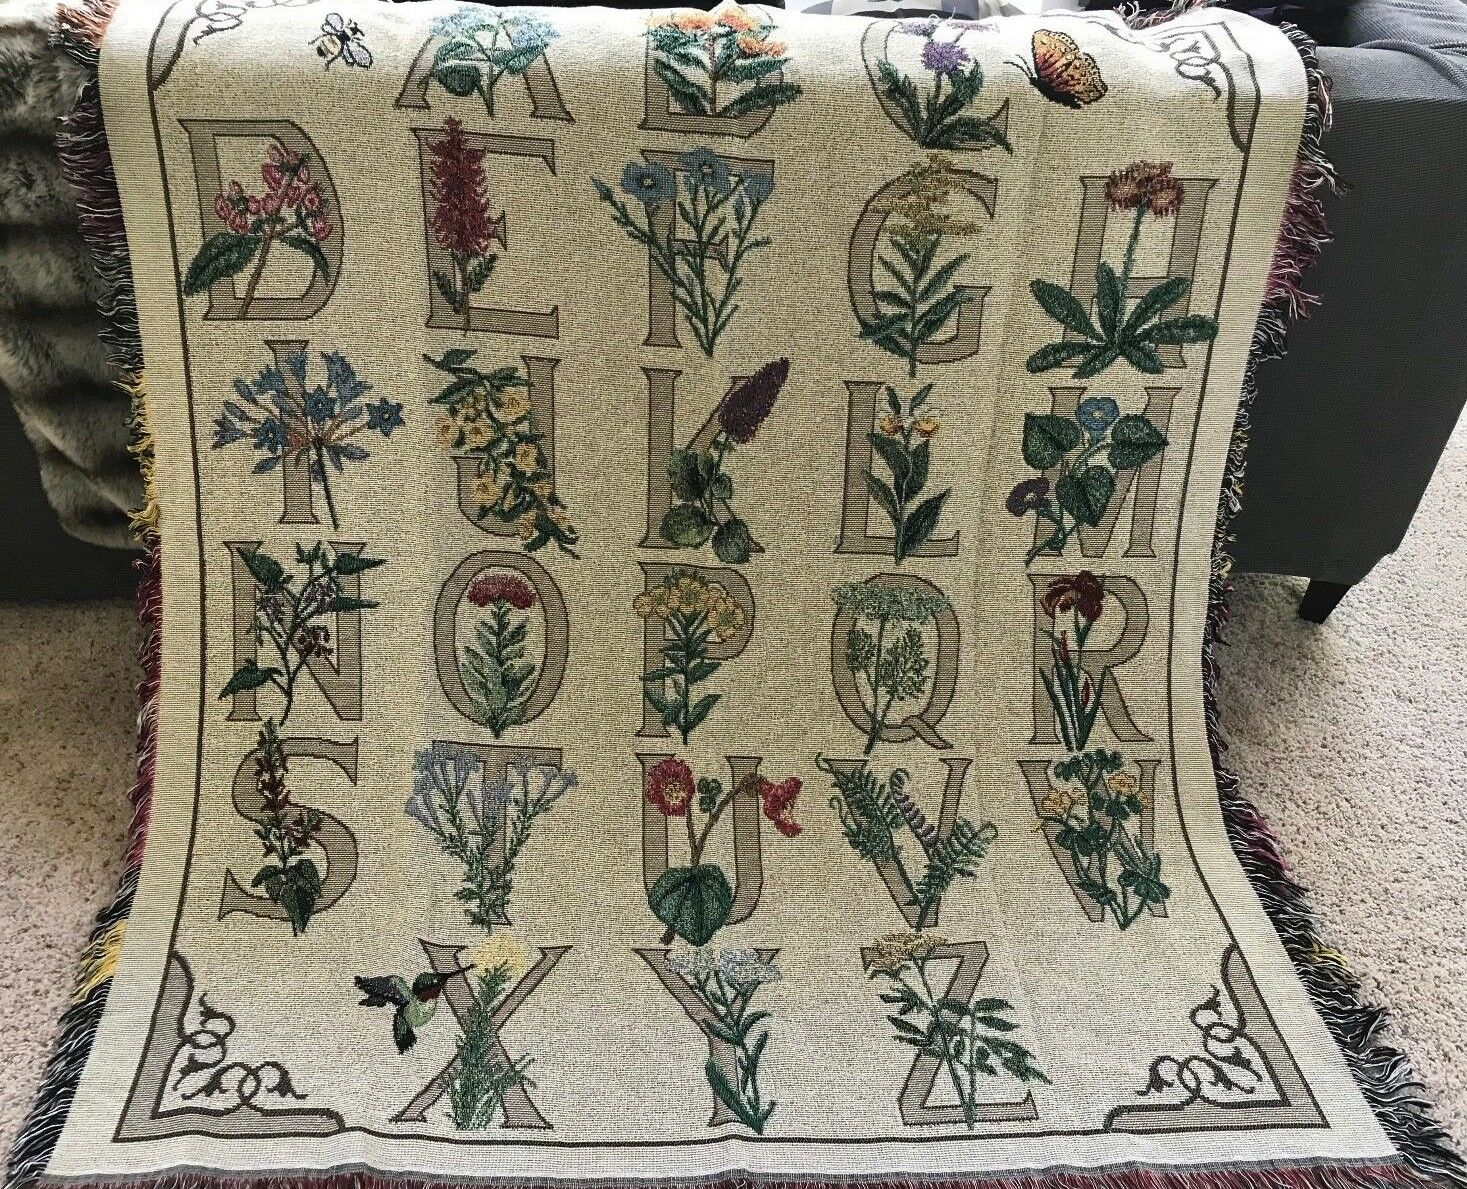 Tapestry Throw  Floral Alphabet  Woven Blanket Wall Afghan 60 x 50